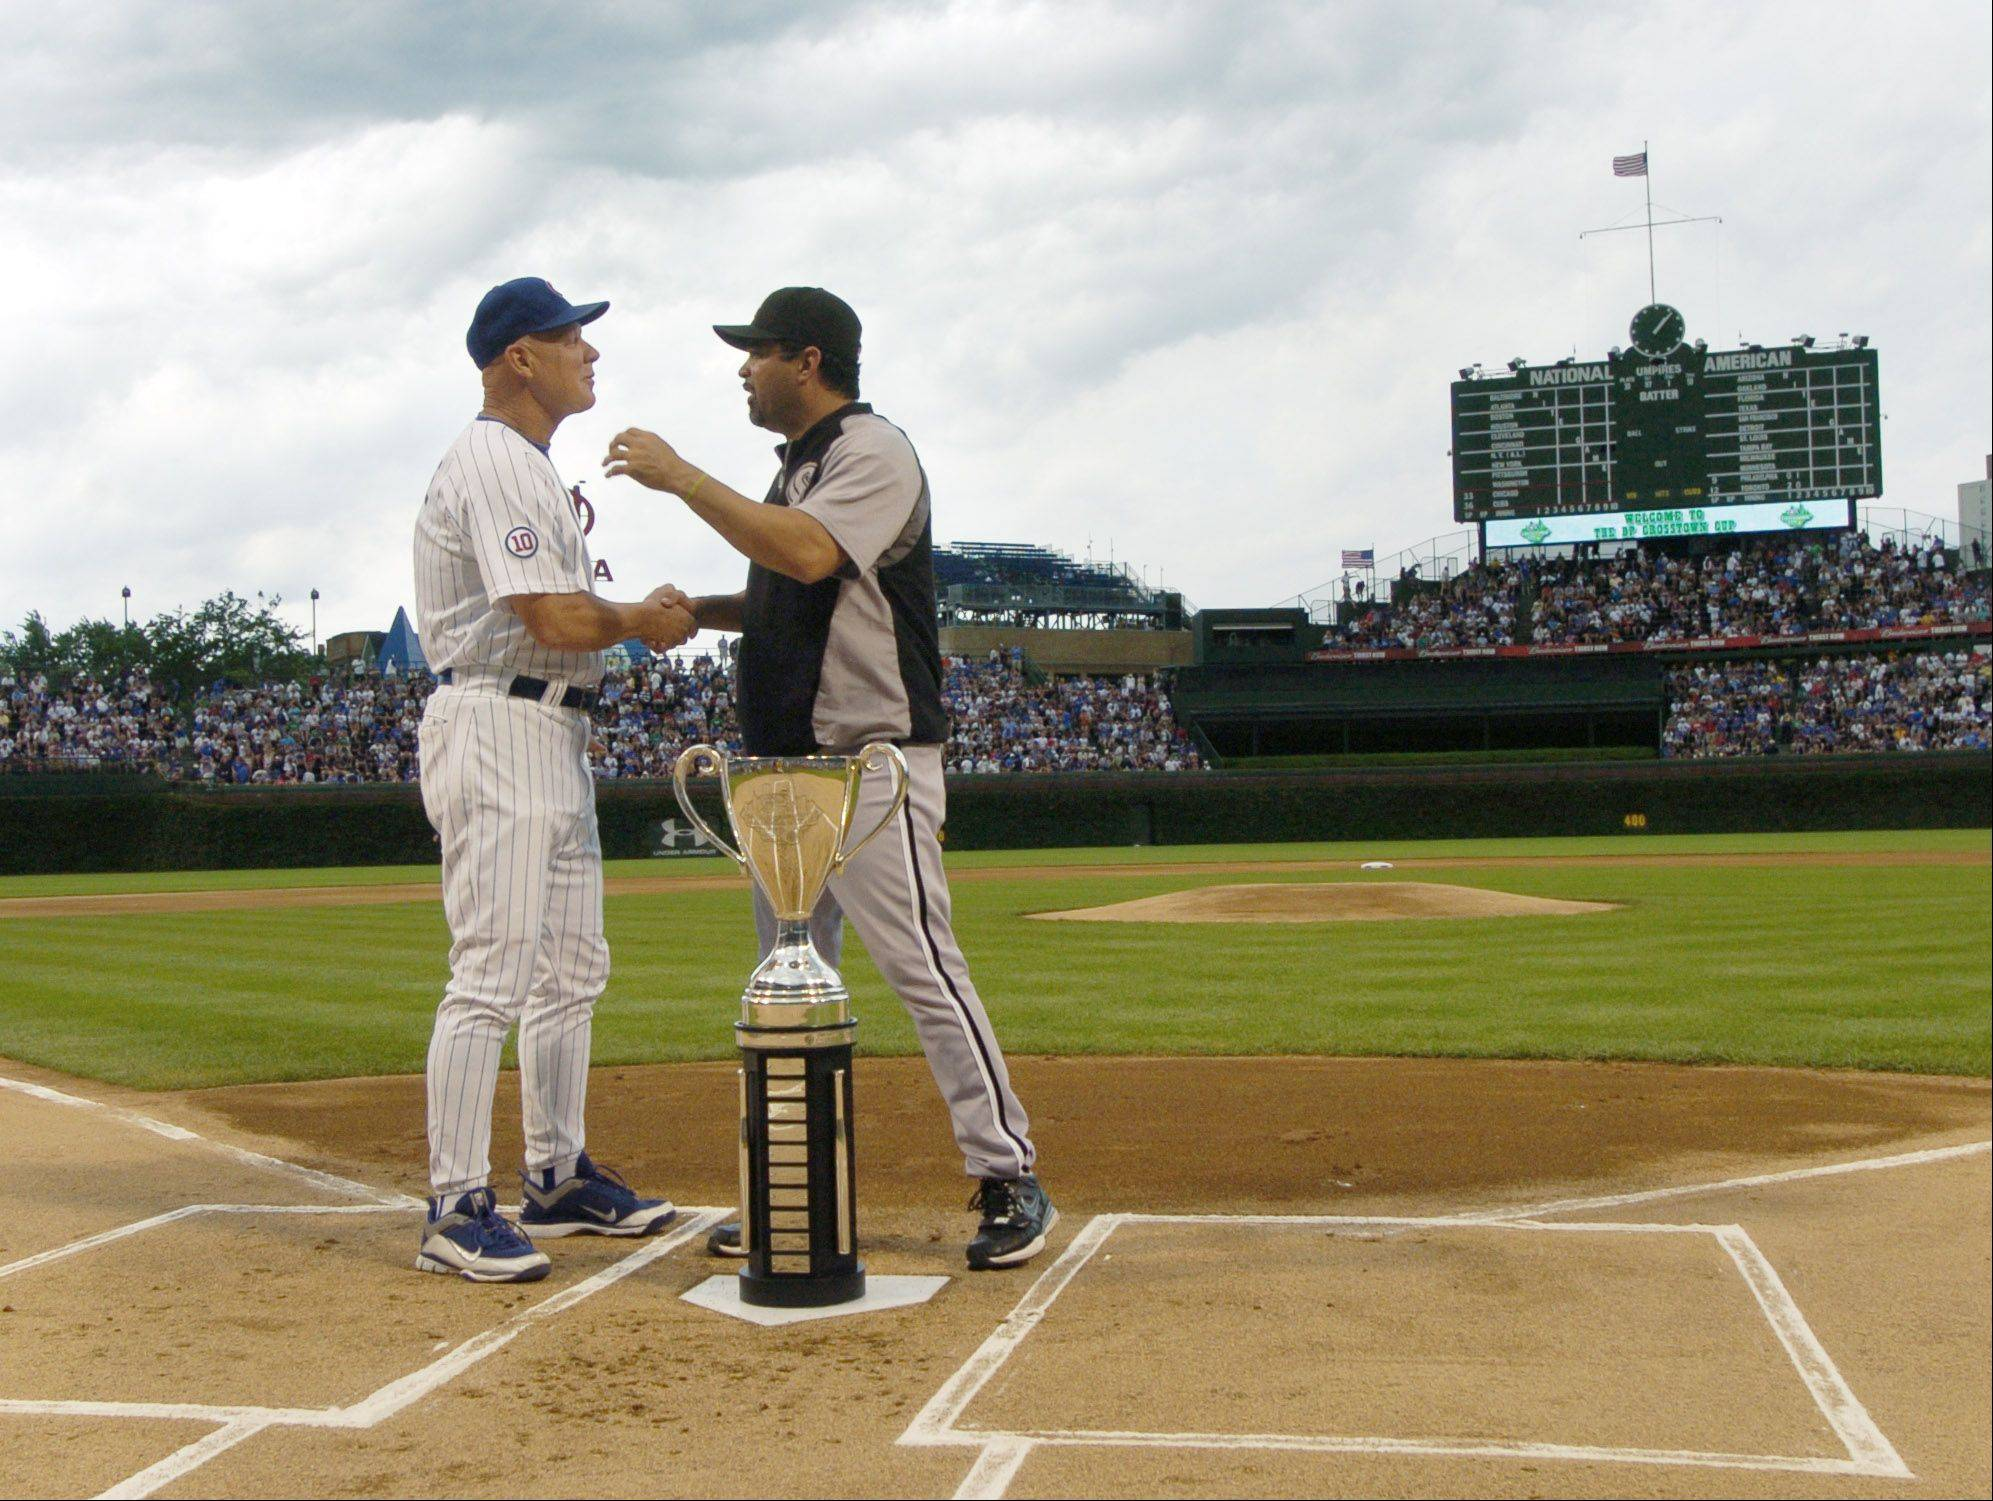 Cubs manager Mike Quade and Sox manager Ozzie Guillen chat while the Crosstown Cup rests on home plate before Friday's game at Wrigley Field.